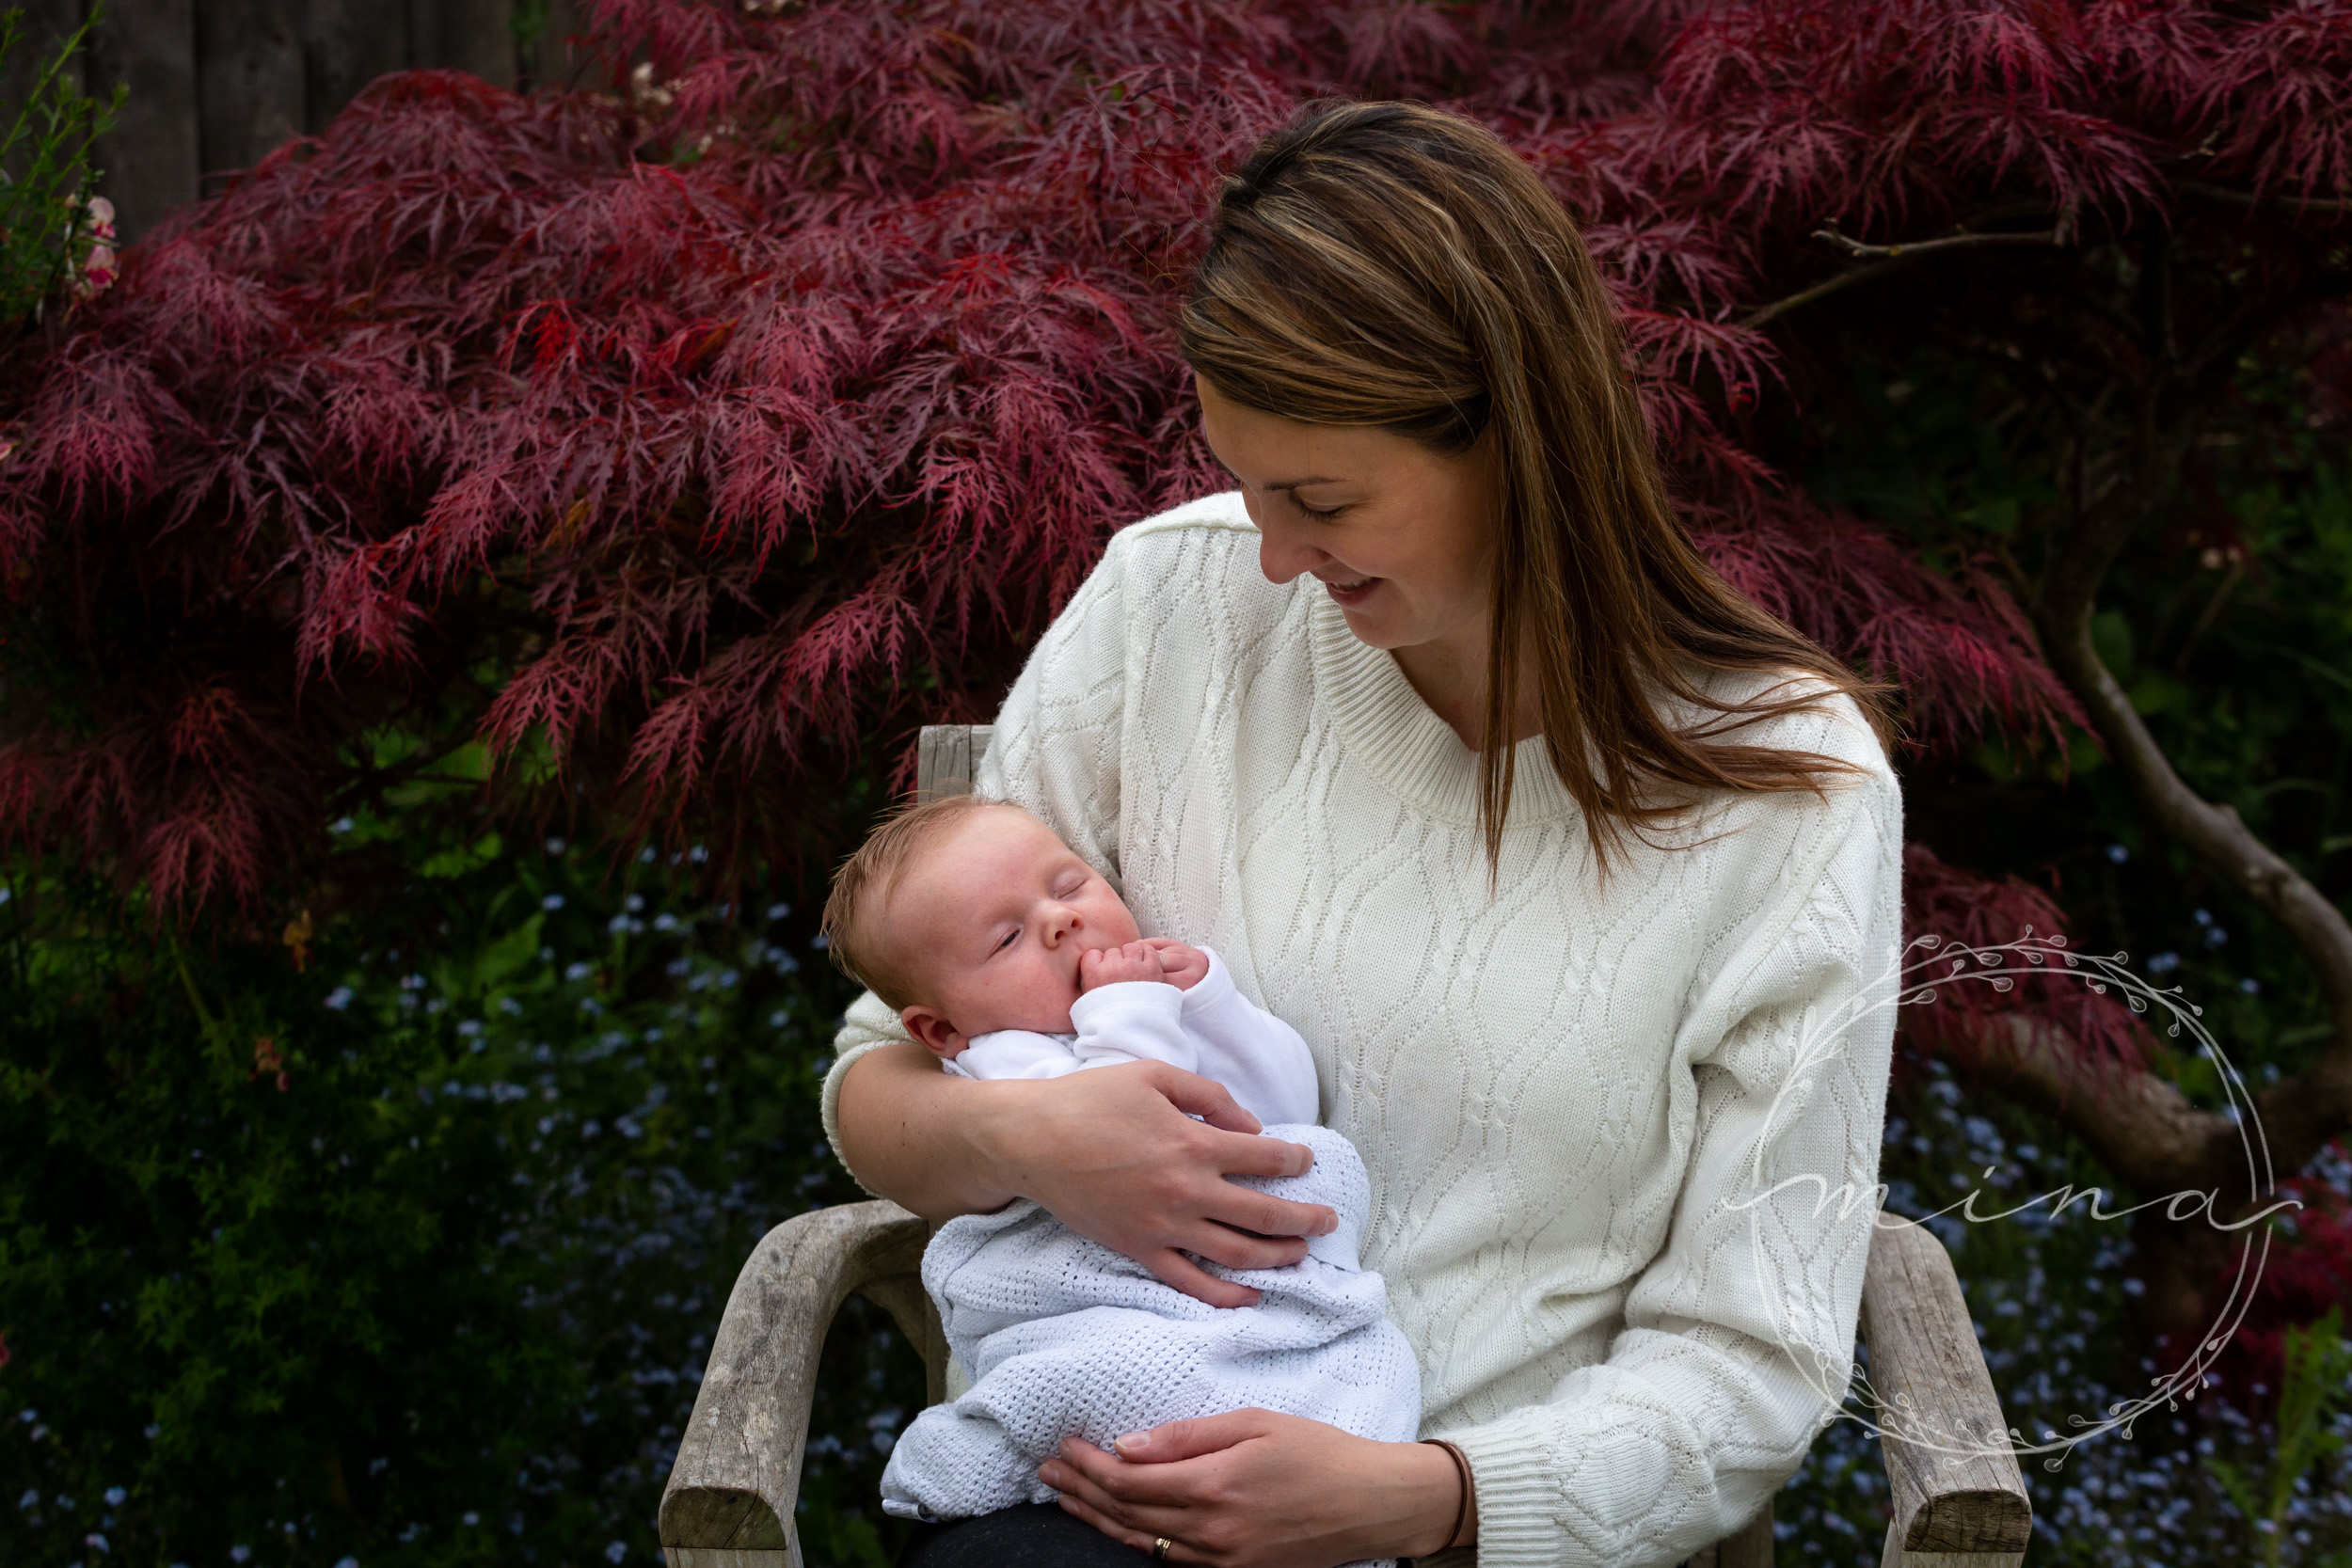 Richmond-upon-Thames Newborn Photographer